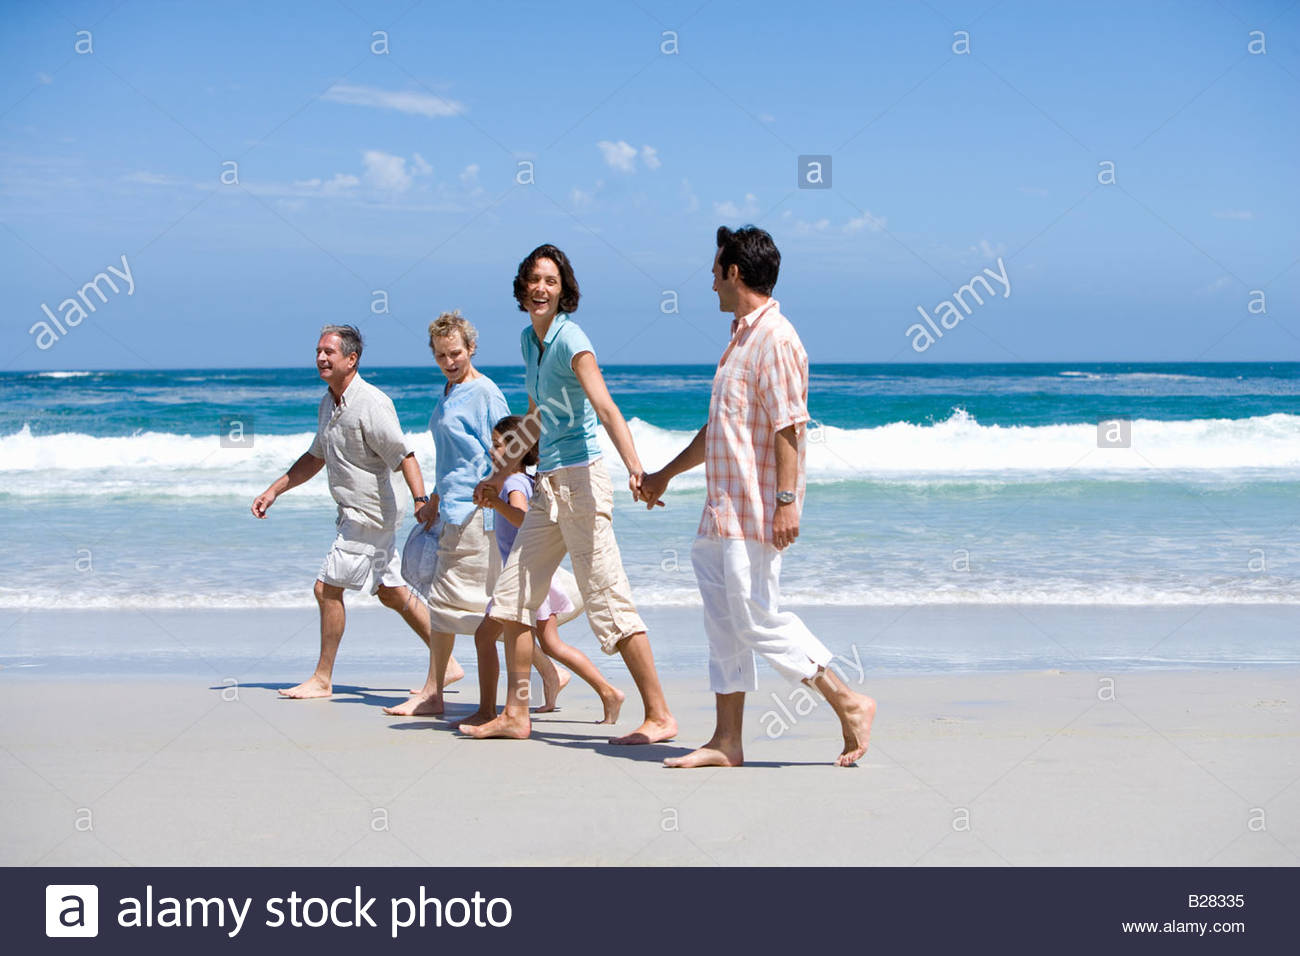 Famille de trois générations walking on beach, holding hands Photo Stock